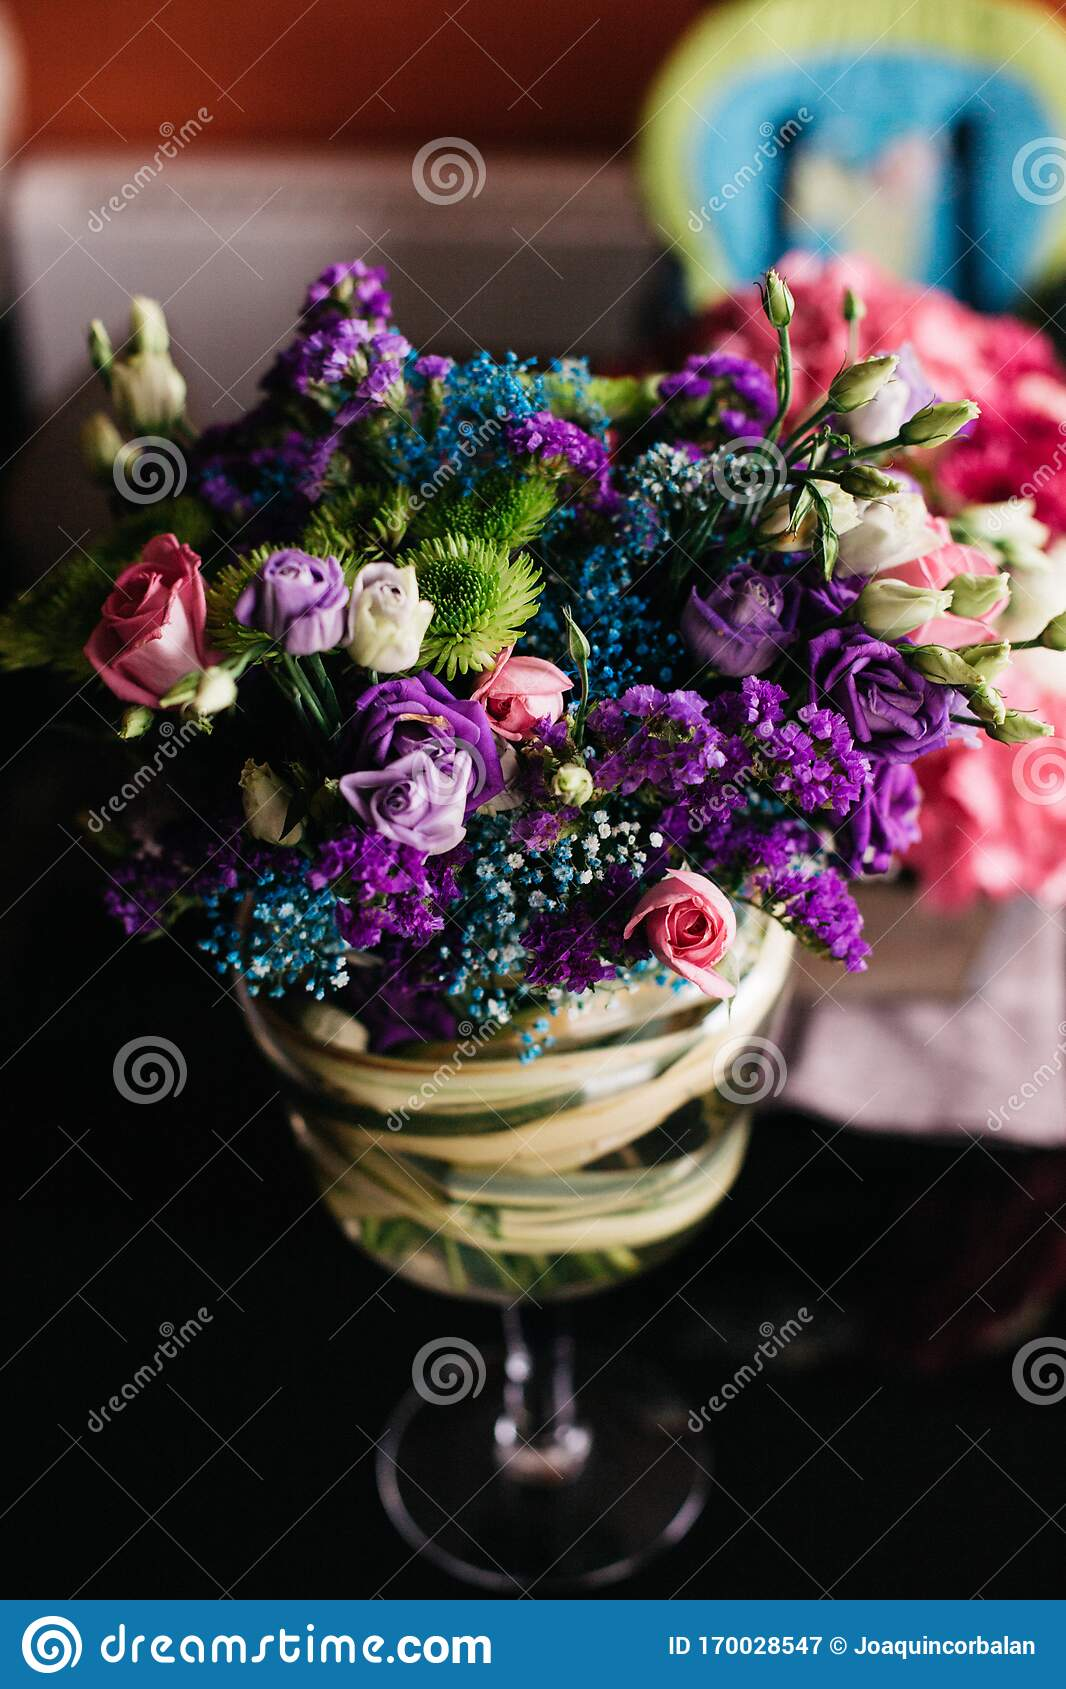 Colorful Bridal Bouquet Stock Image Image Of Symbol 170028547